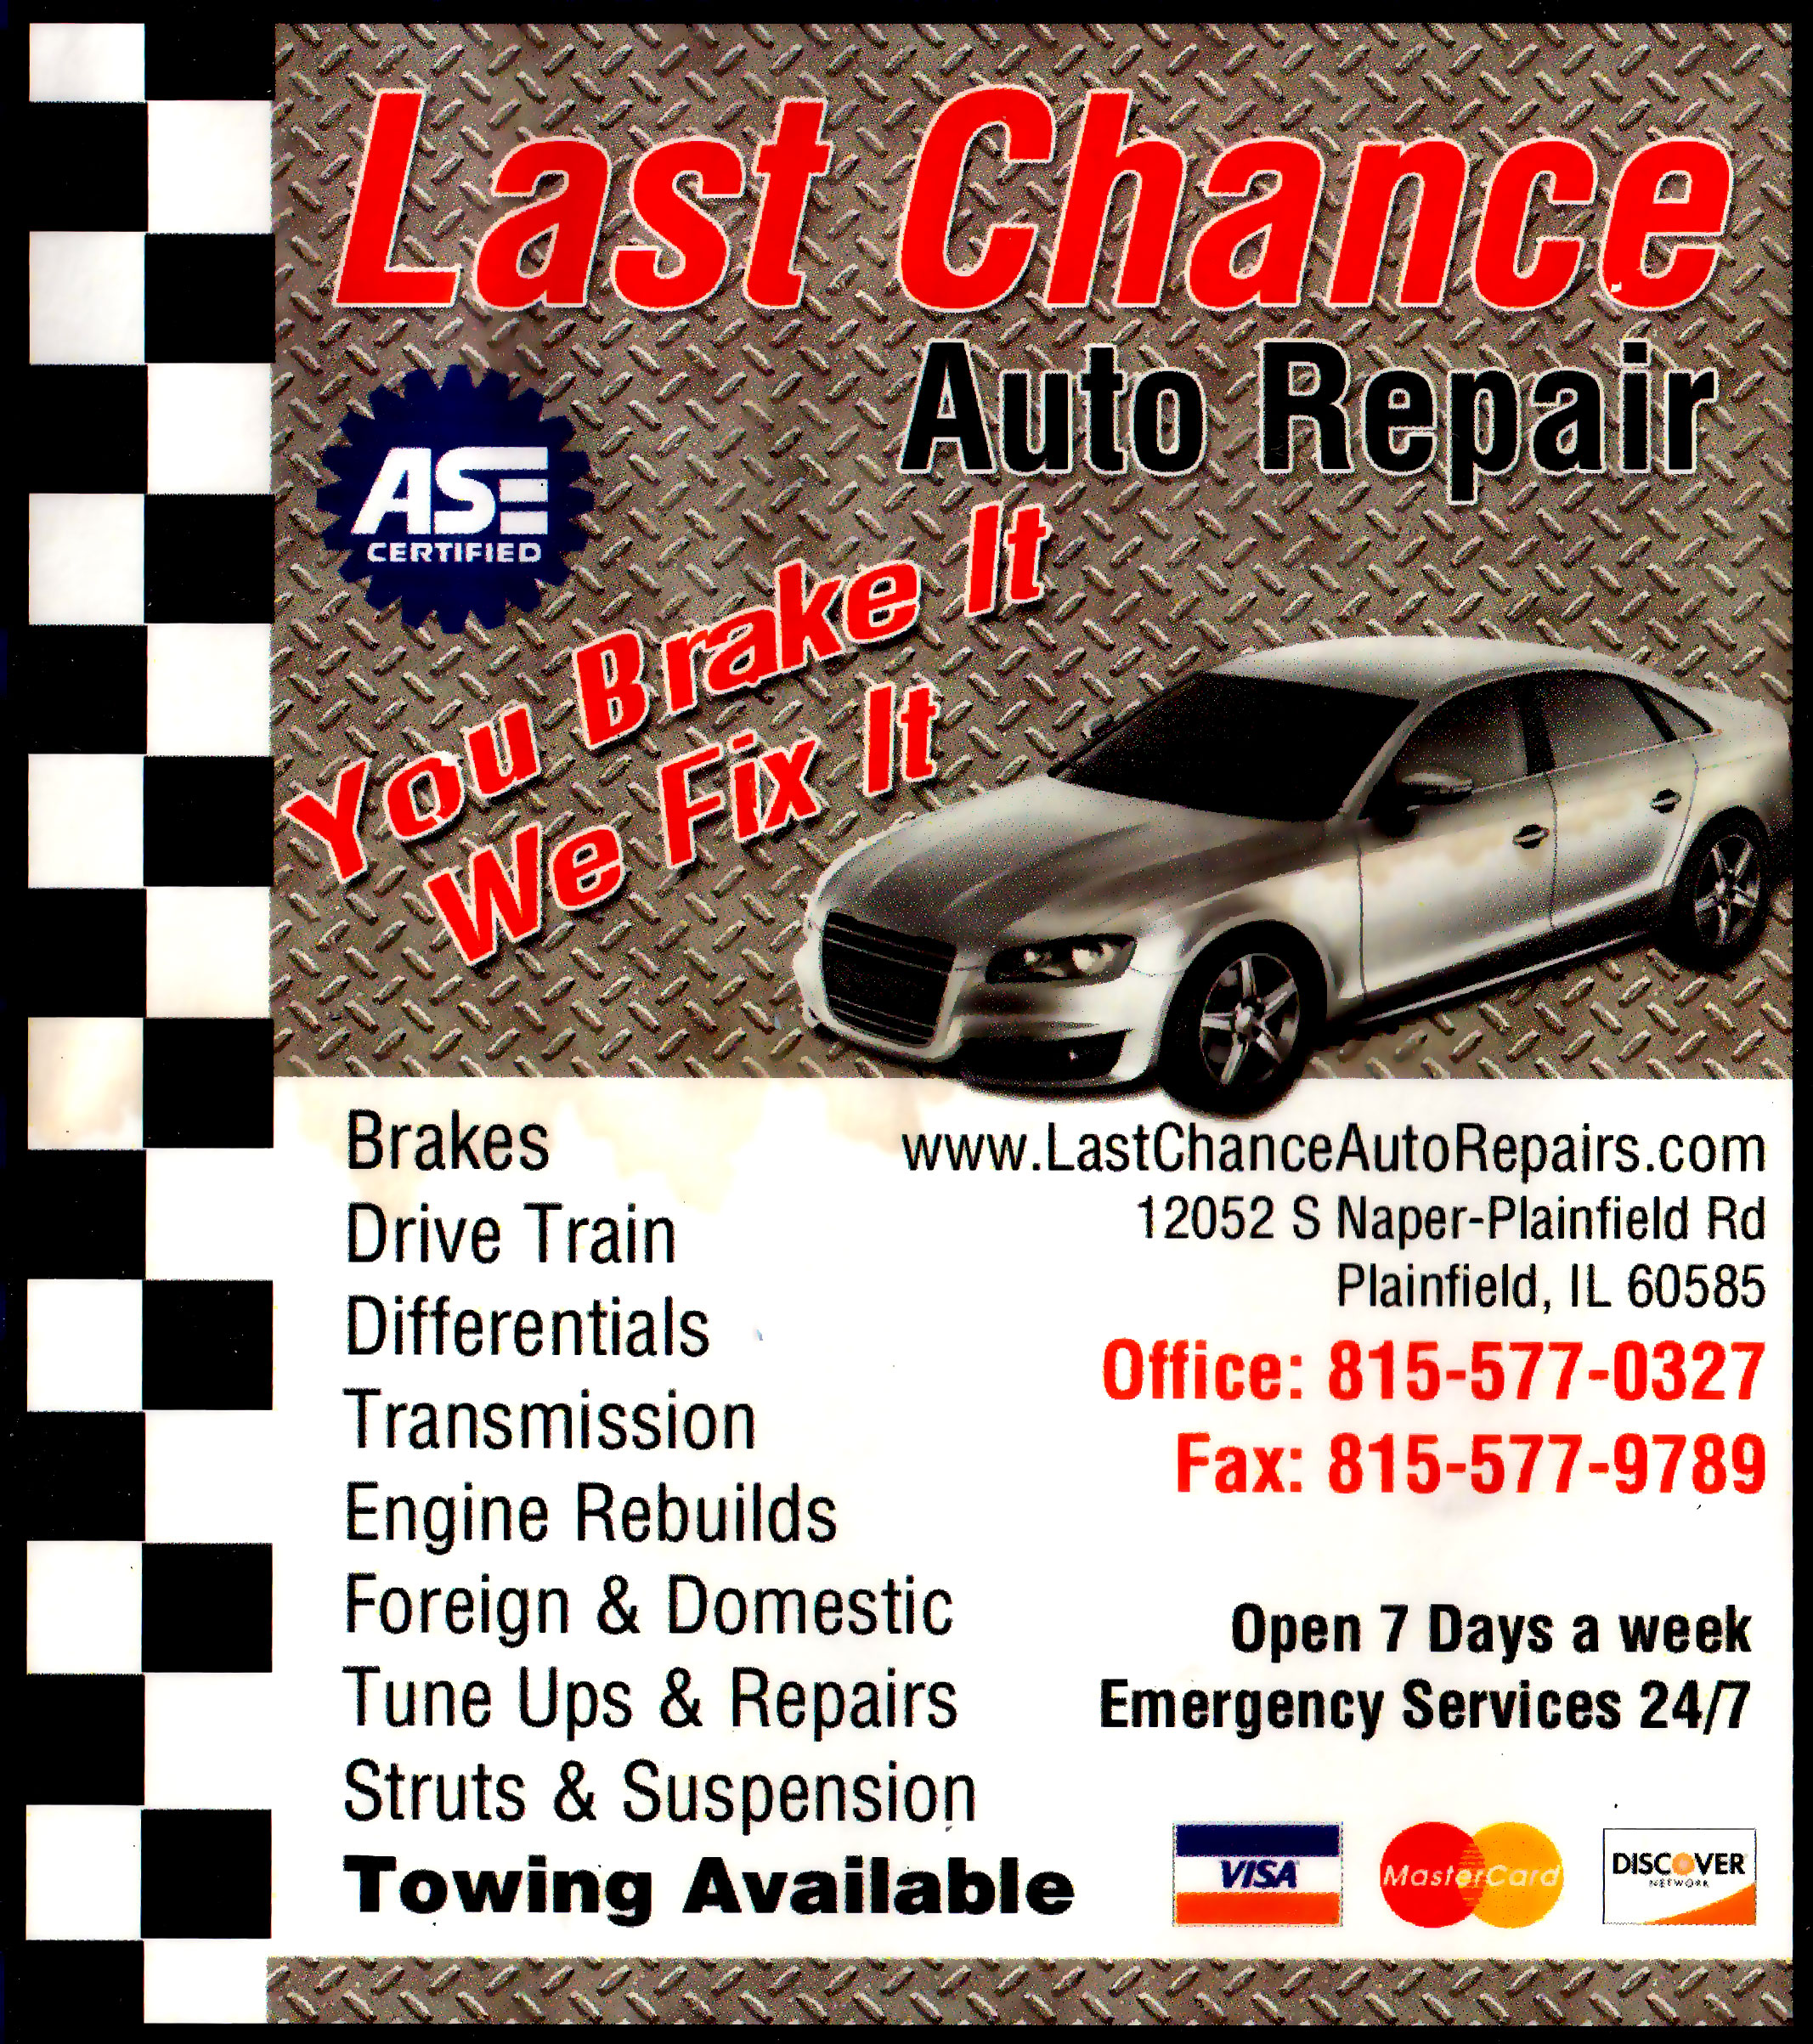 Bolingbrook Auto Repair Shop Serving Bolingbrook Il